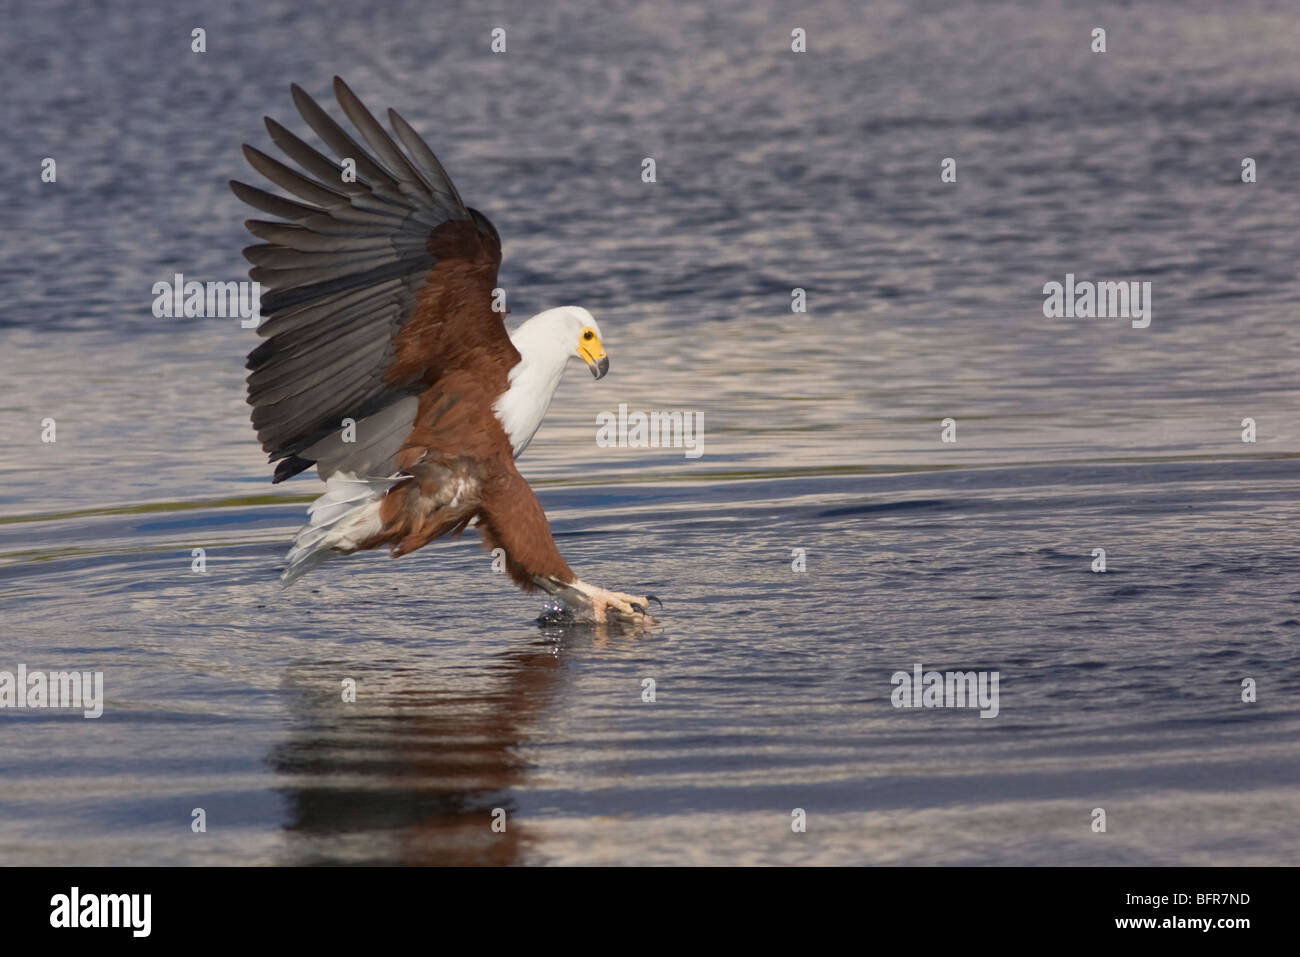 African fish eagle plunging its talons into water to catch a fish - Stock Image